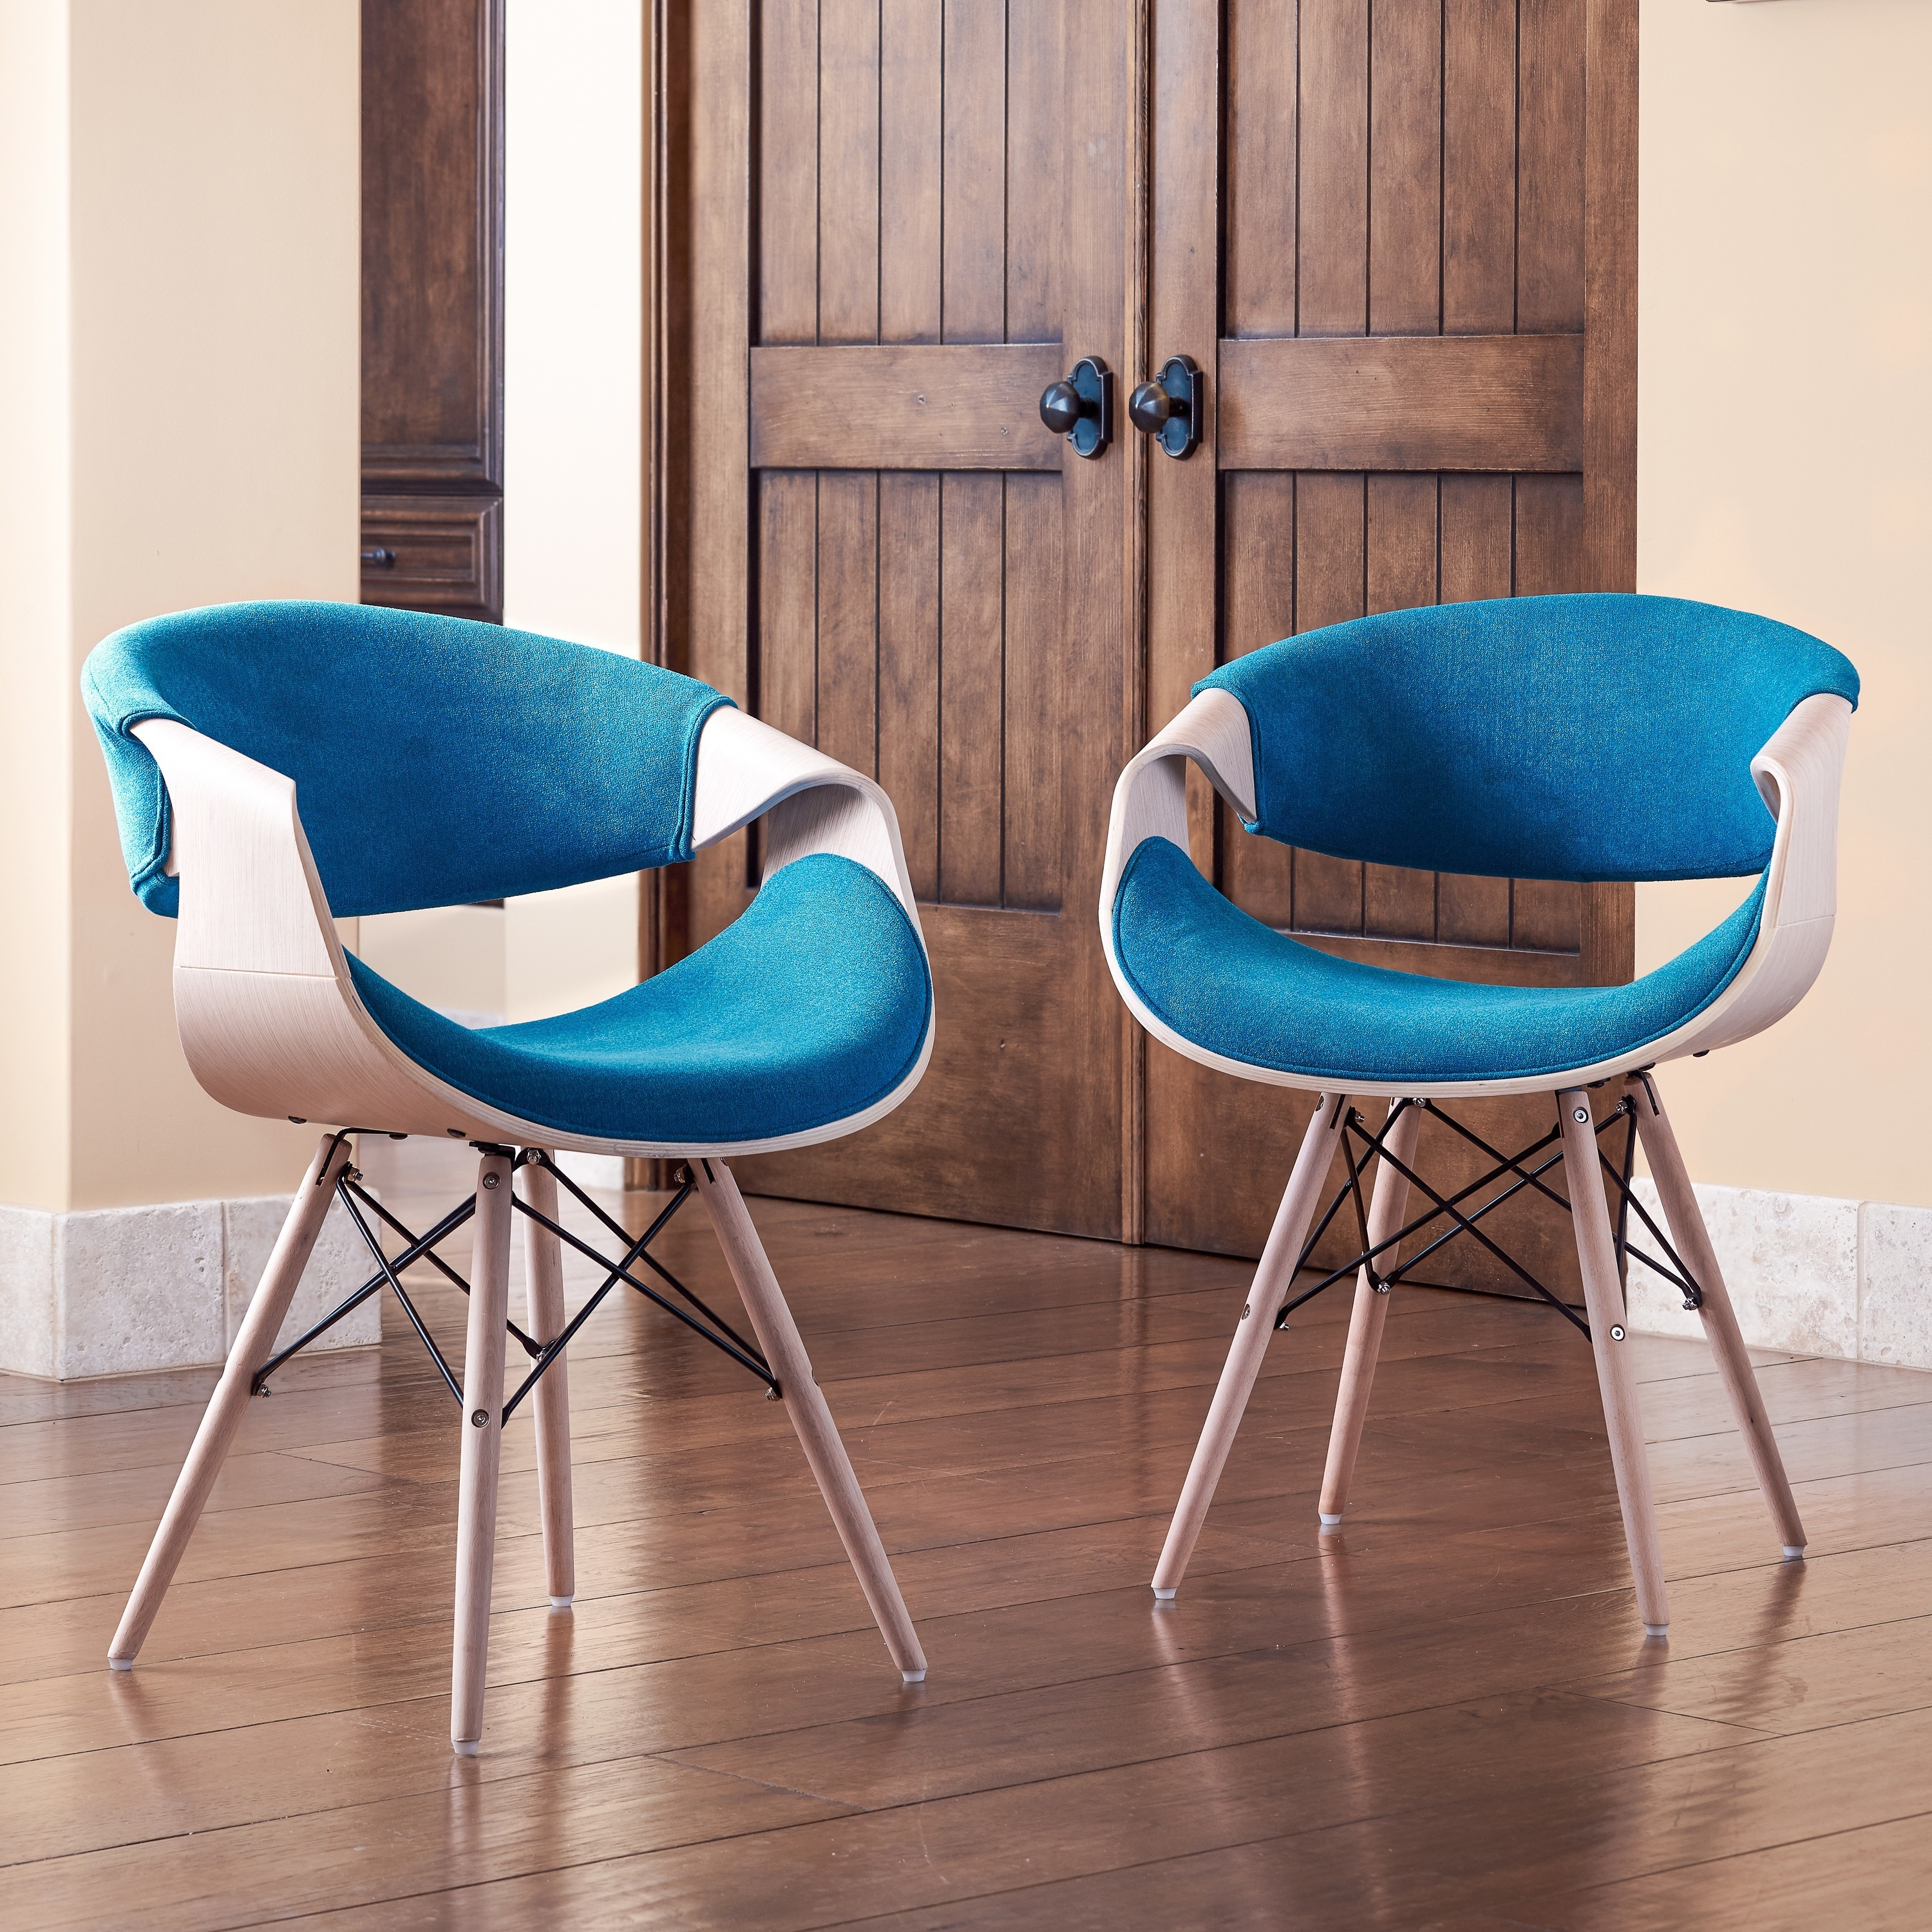 magnetize chair design accent with blue furniture as modern ideas and pillows upholstered chairs also well arms fabric